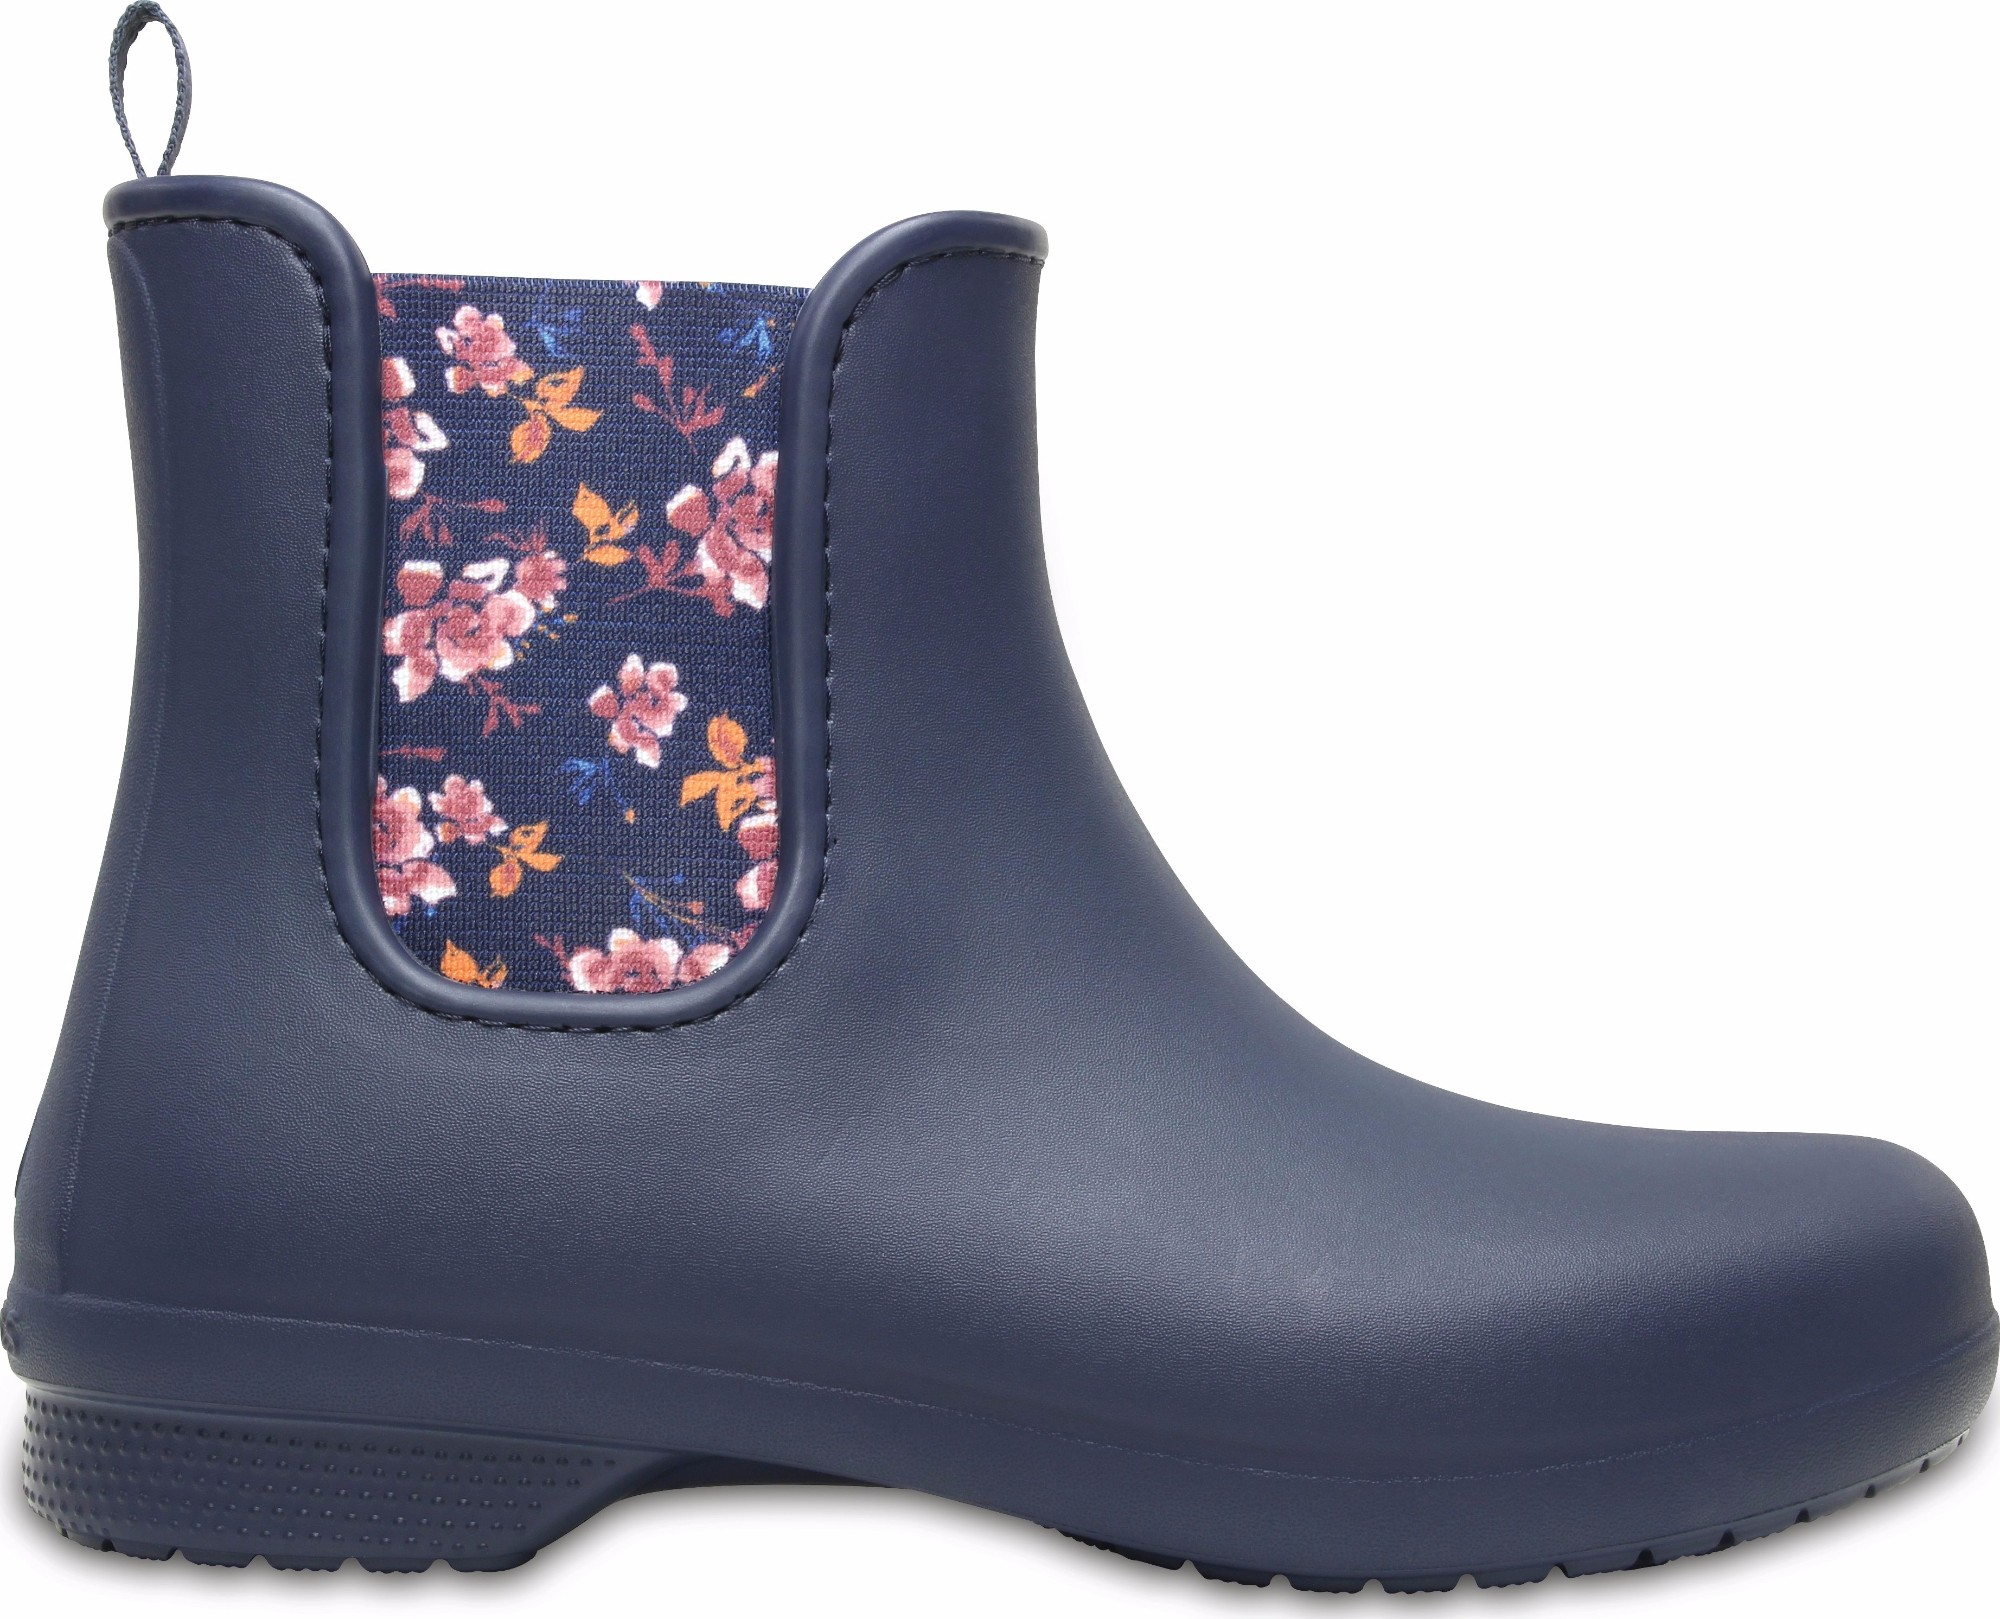 Crocs™ Freesail Chelsea Boot Navy/Floral 35